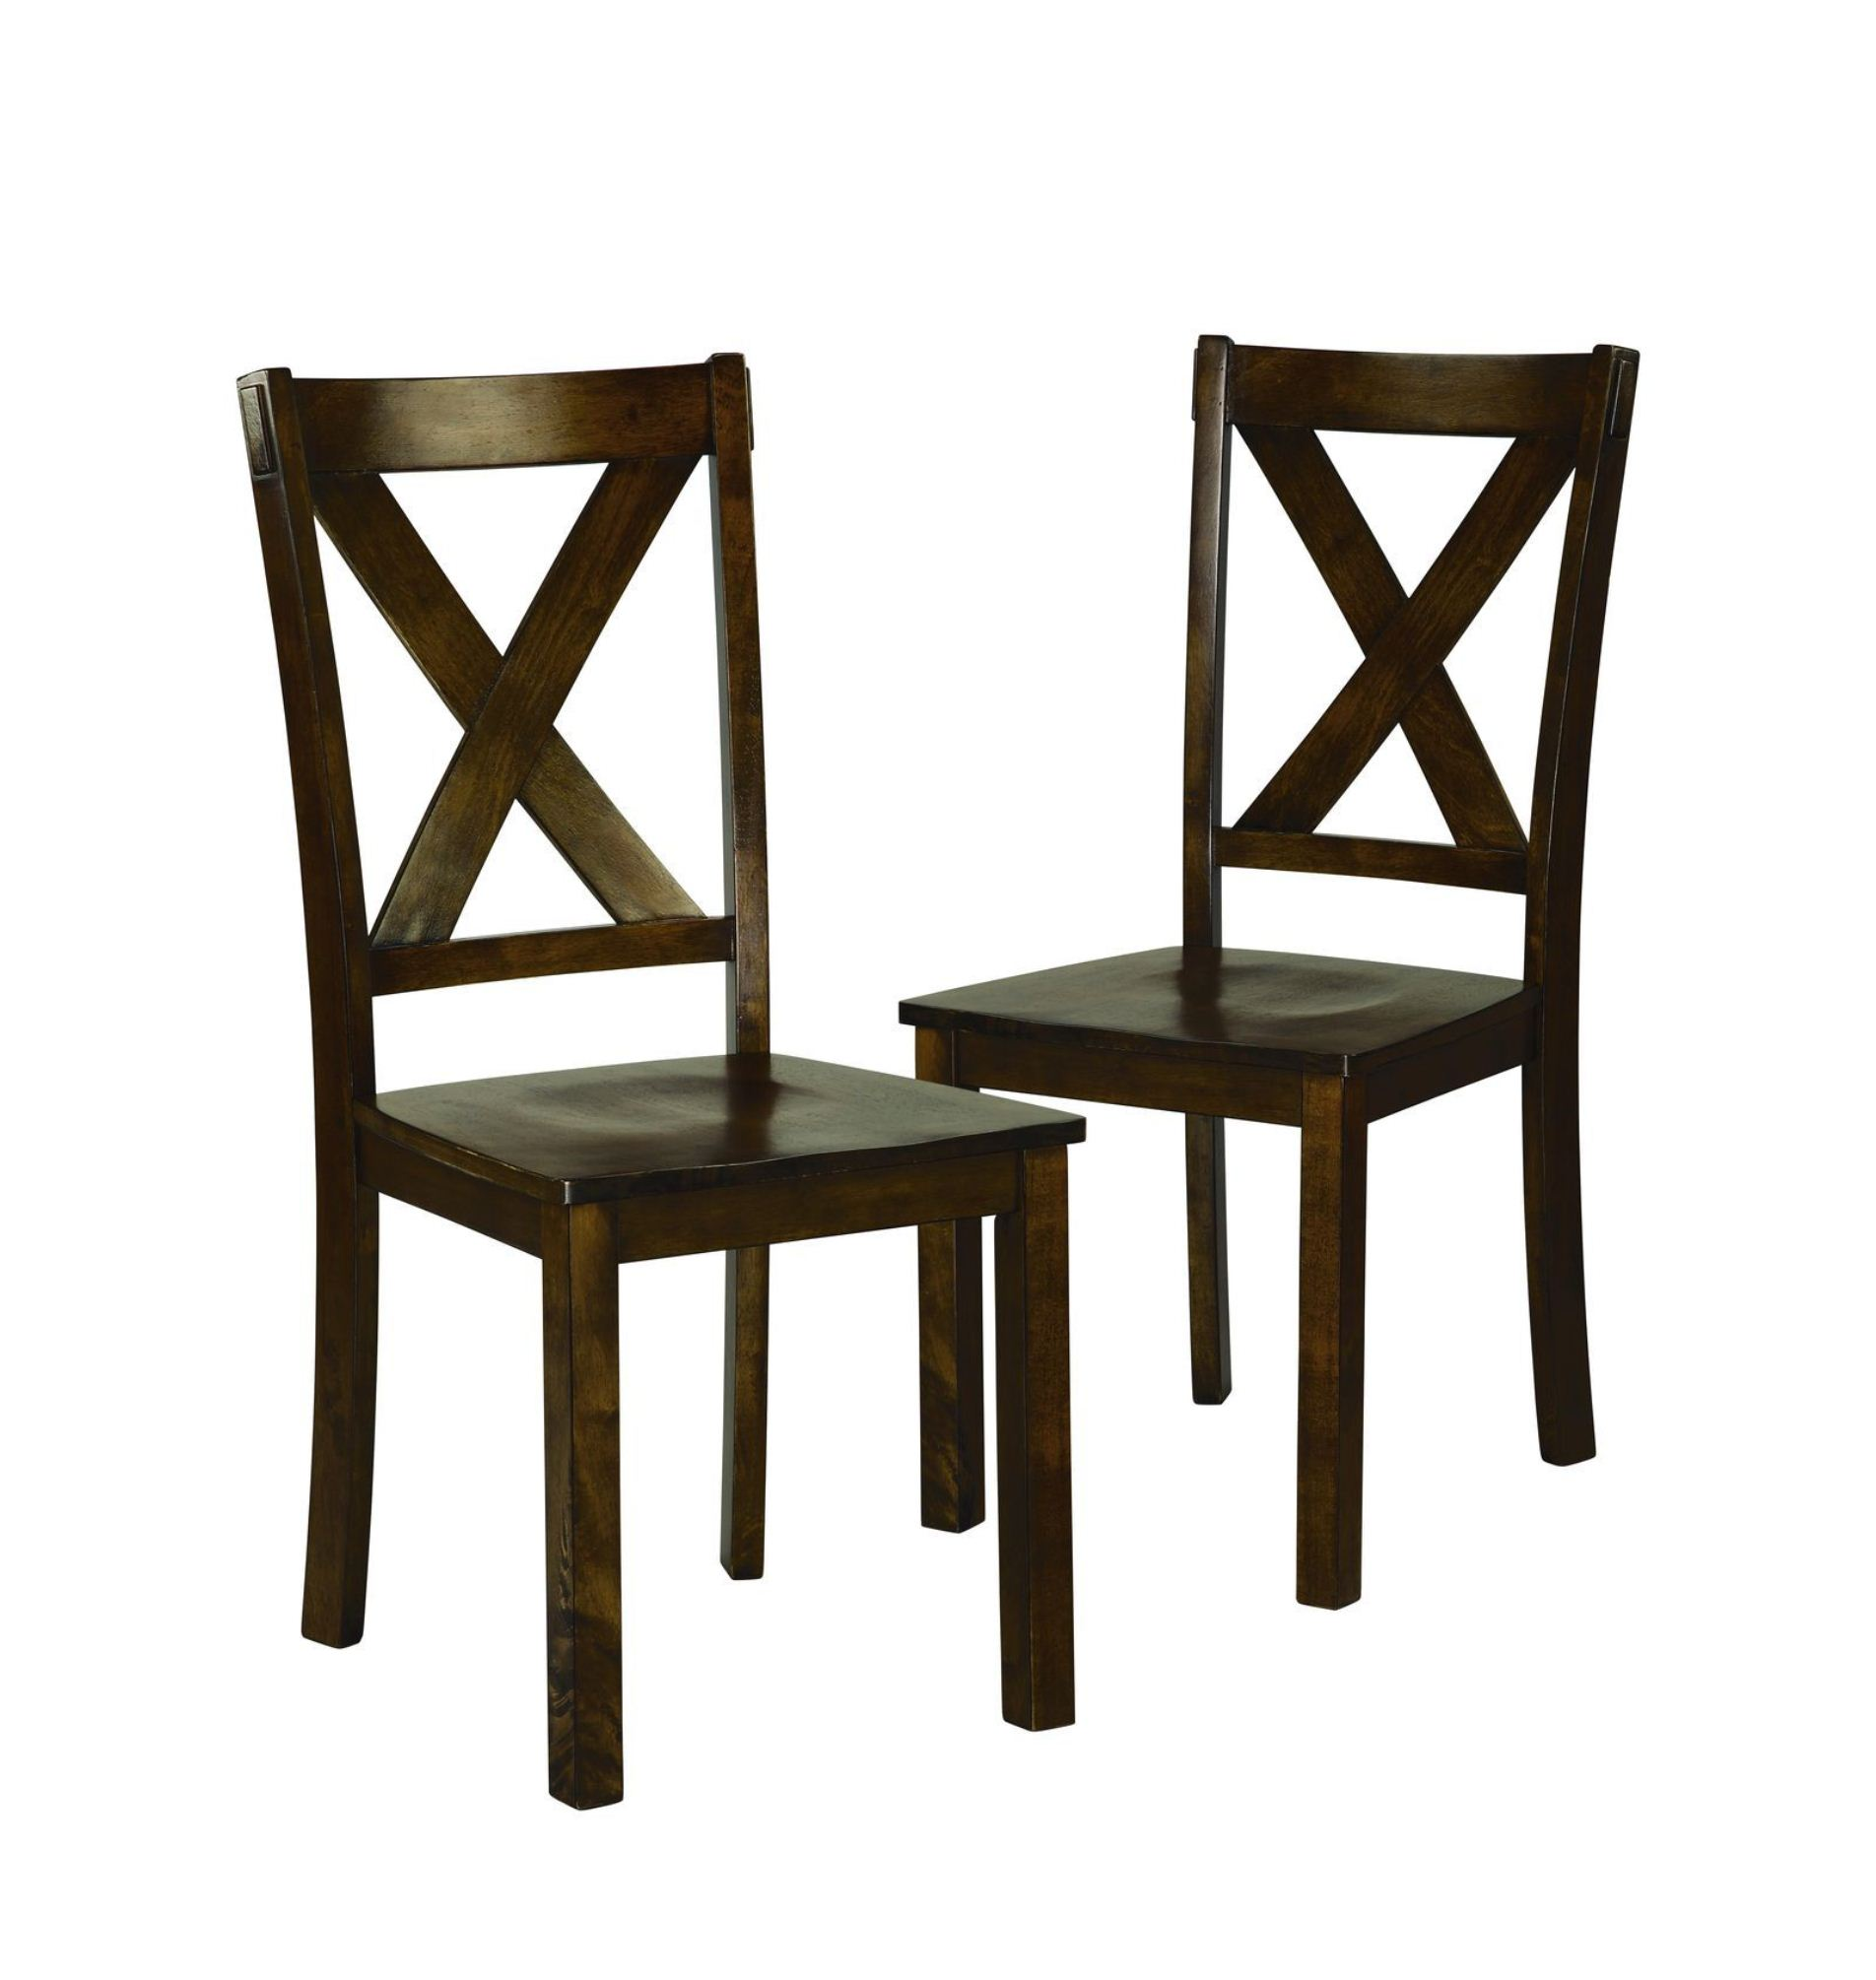 Kmart Dining Chairs Essential Home Kendall Dining Chairs Set Of 2